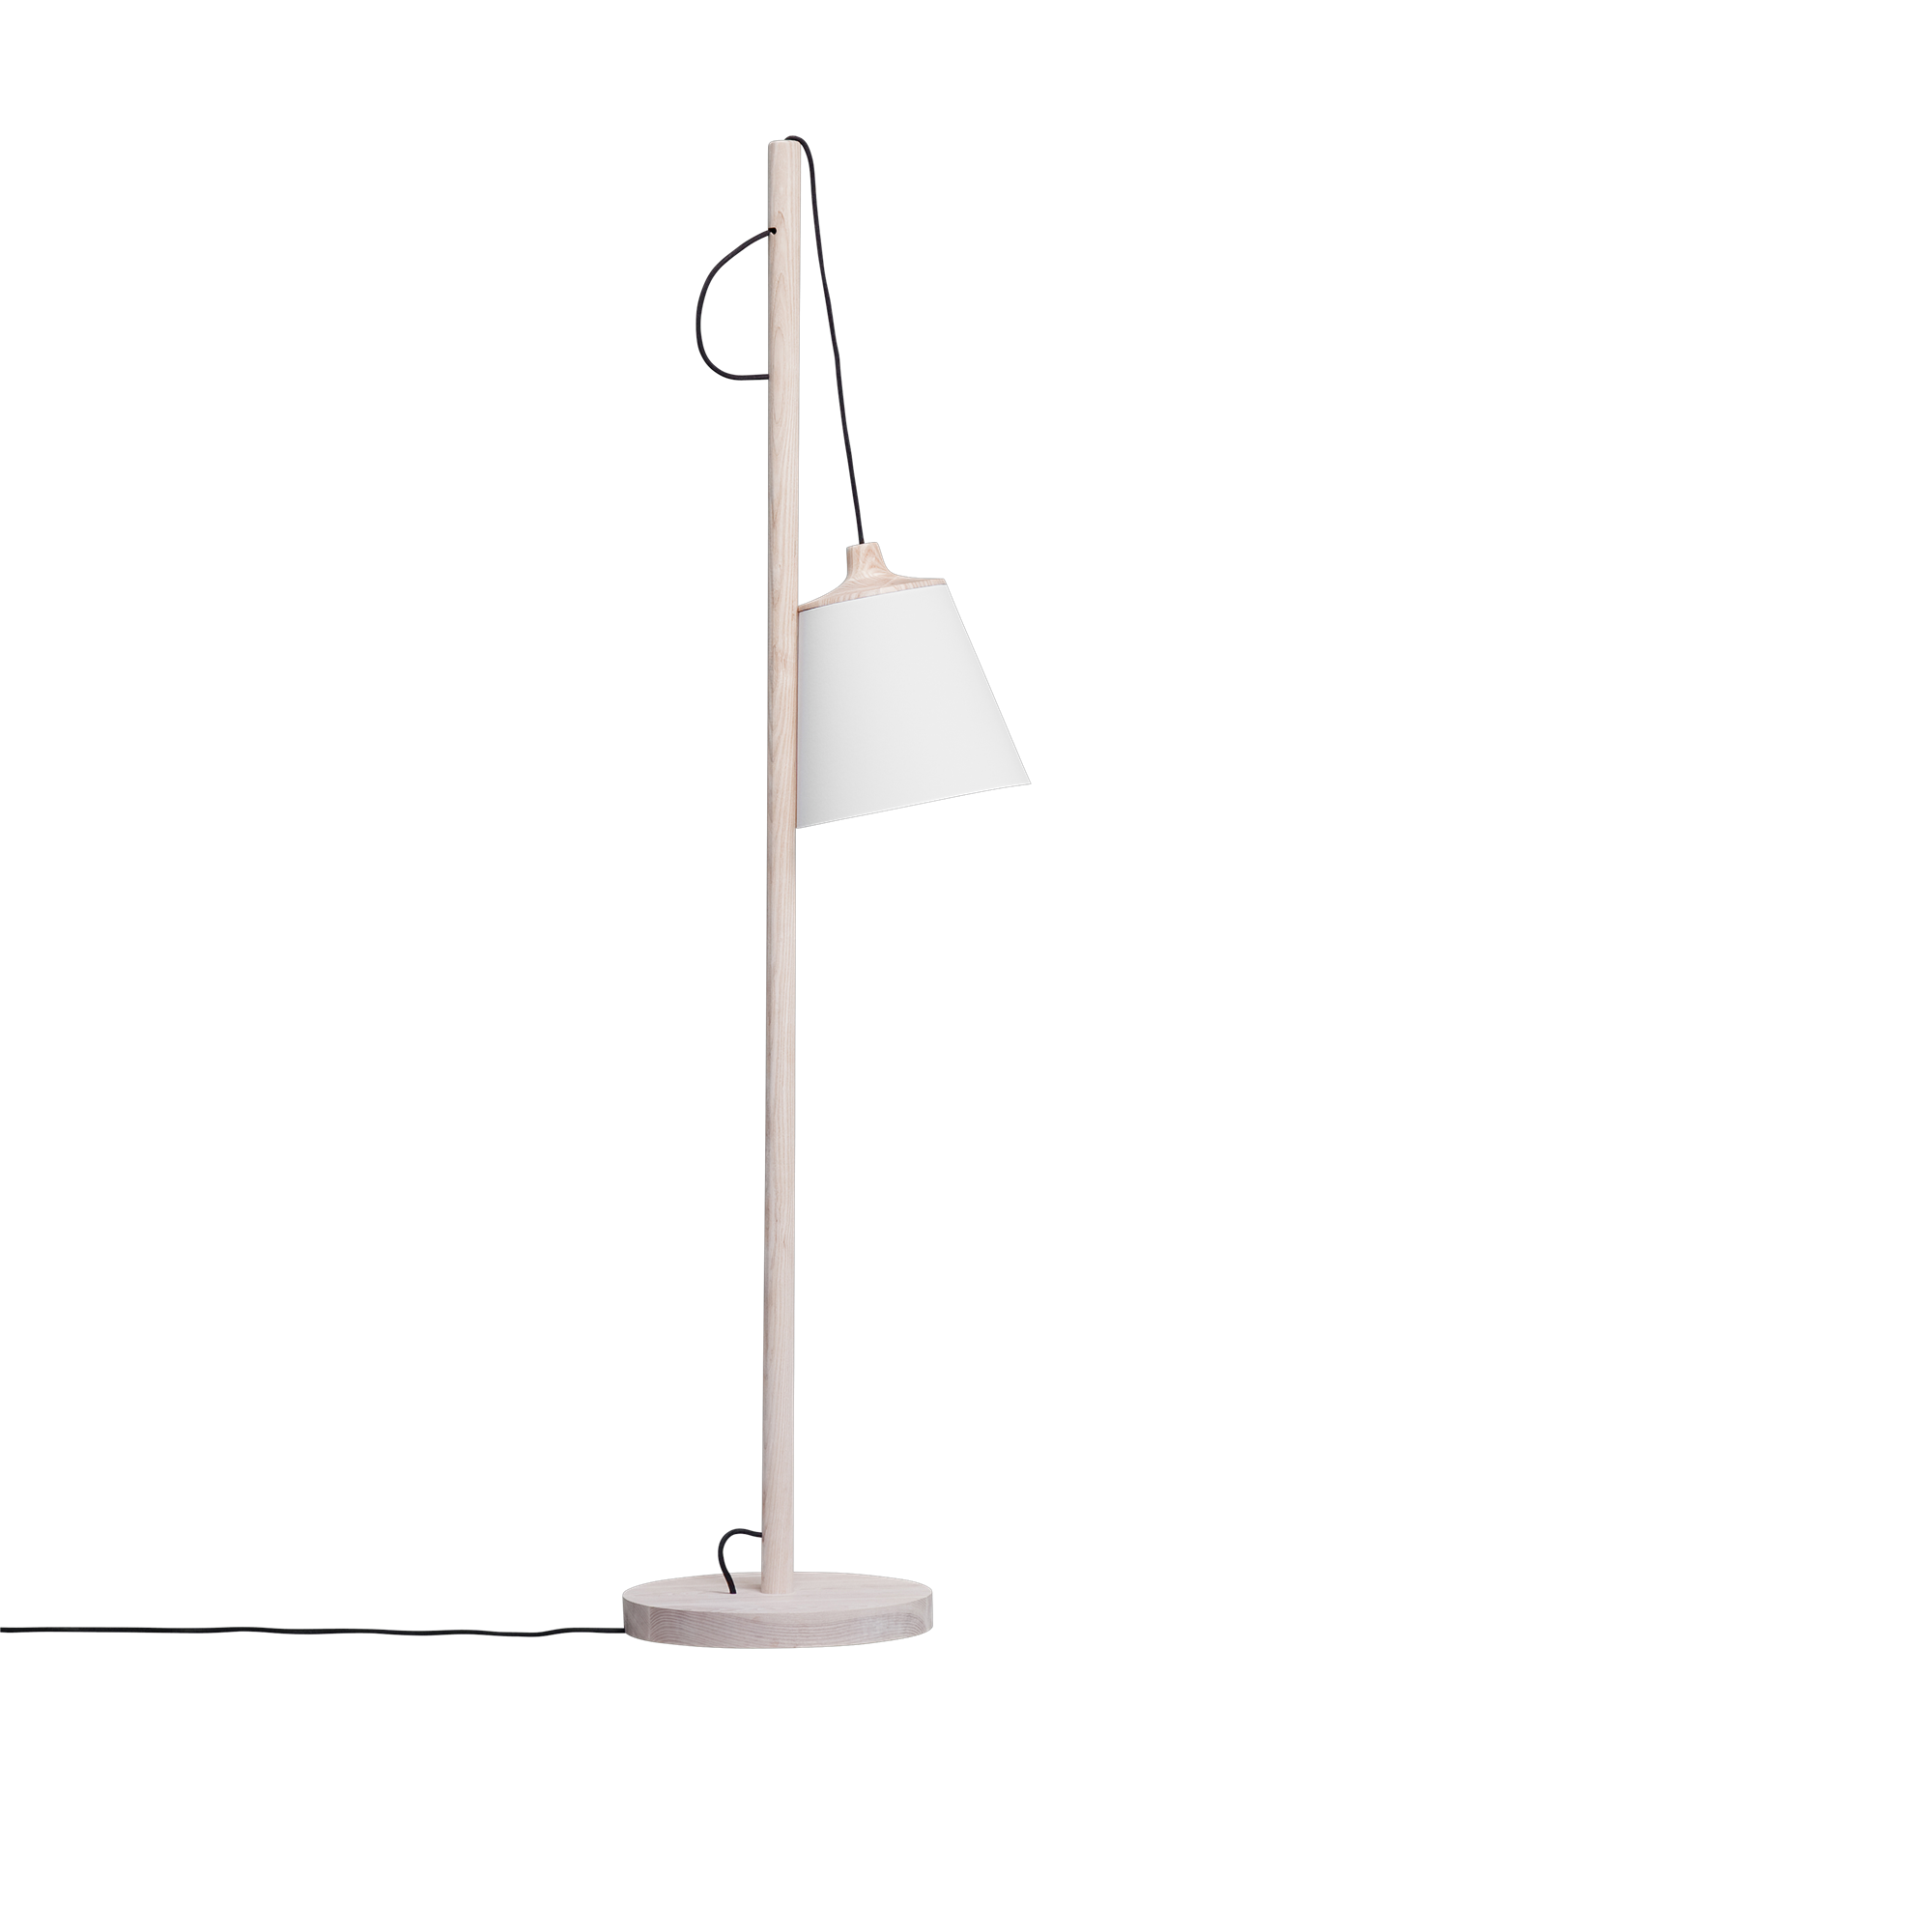 The Pull Floor Lamp Has A Slim But Sturdy Oak Wood Body That Eases Into Your Home Or Professional Space See Floor Lamp Design Floor Lamp Scandinavian Lighting